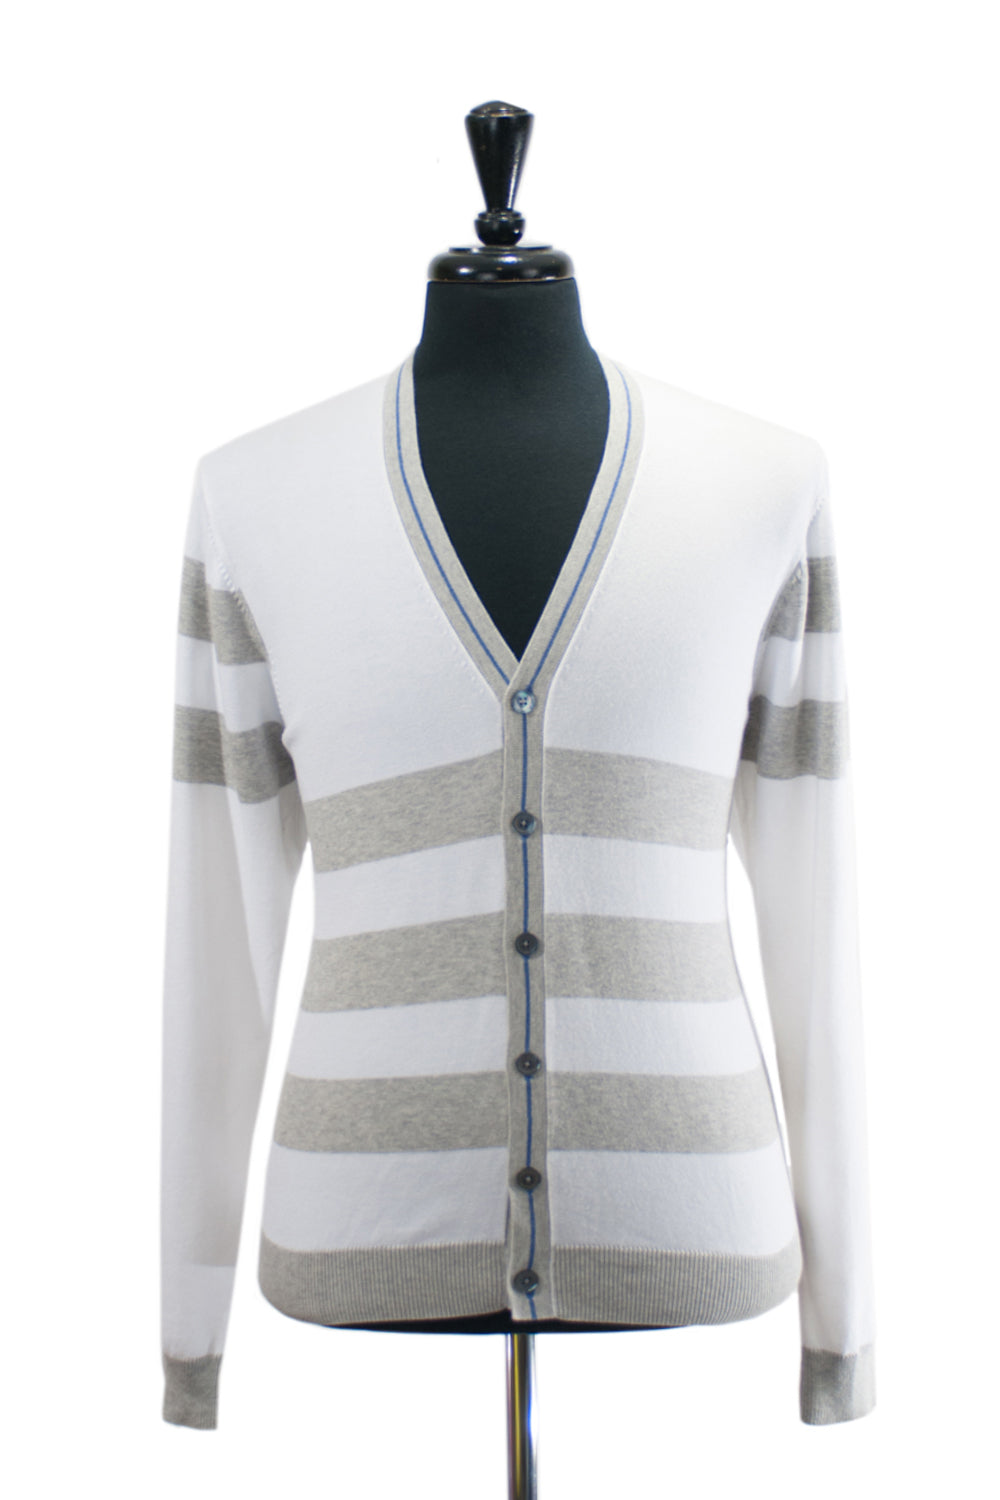 Brooks Brothers Striped Supima Cotton Cardigan. Luxmrkt.com menswear consignment Edmonton